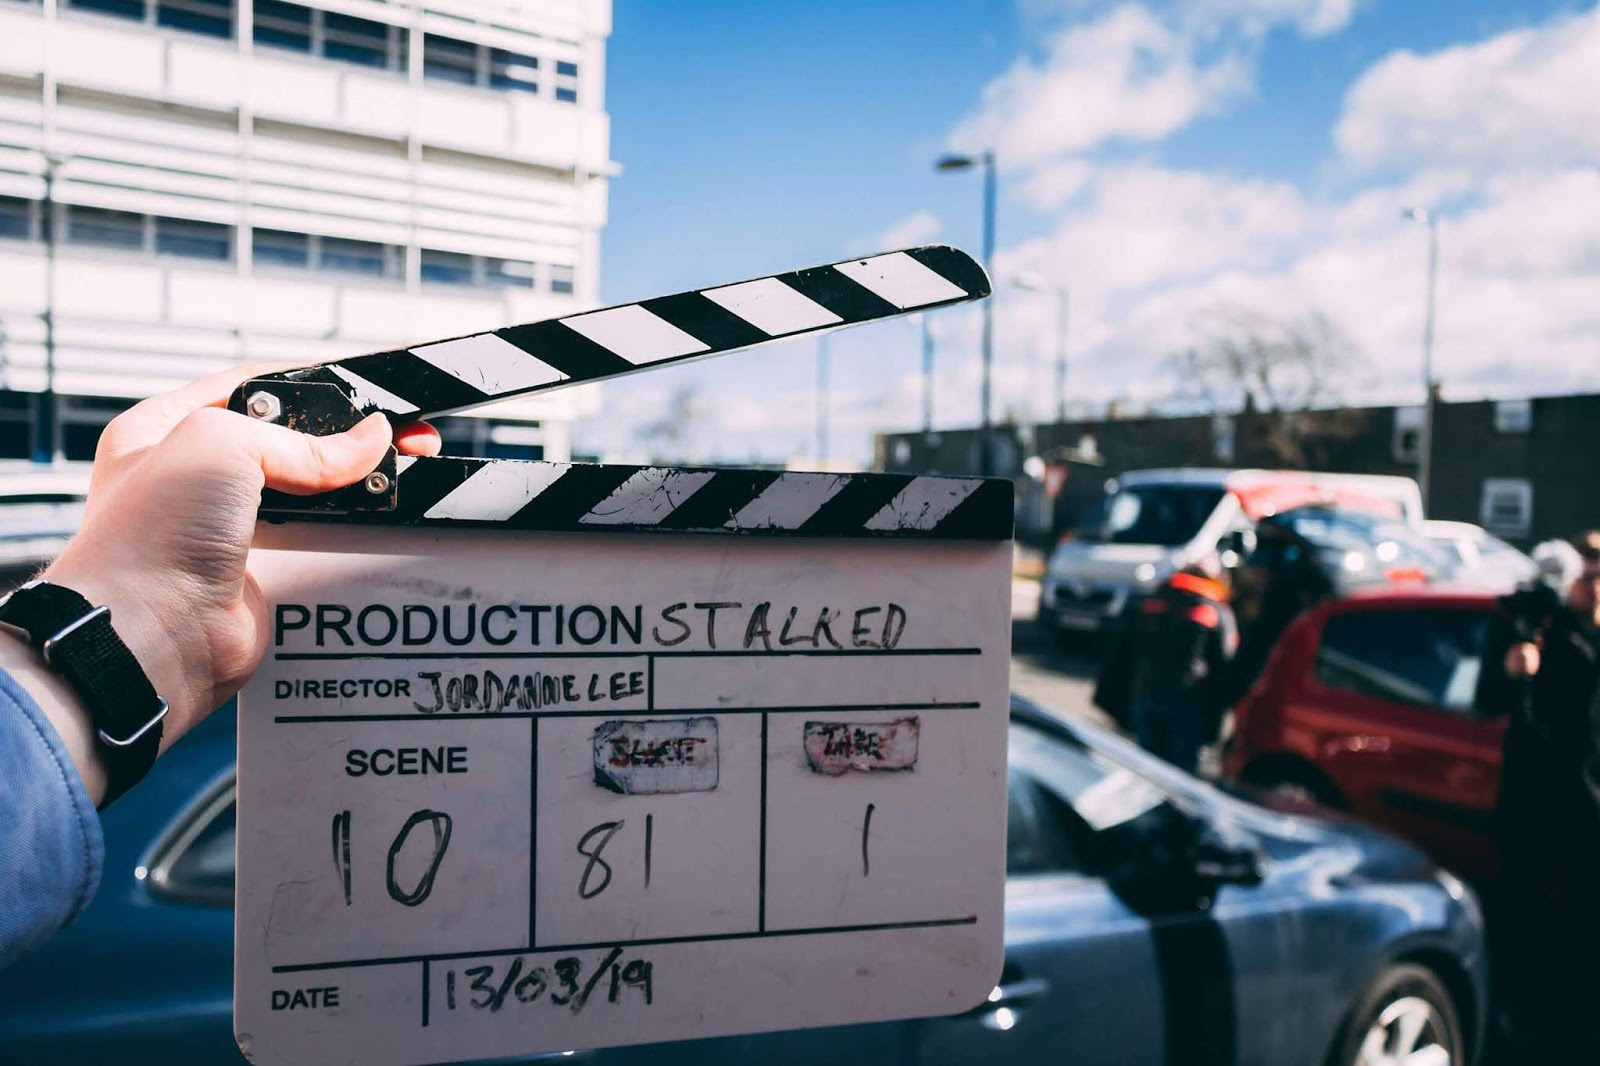 A close up photo of the clapperboard that was used whilst filming my first solo short film by Donald Mcleod. The clapper is black and white with blue sky in the background.